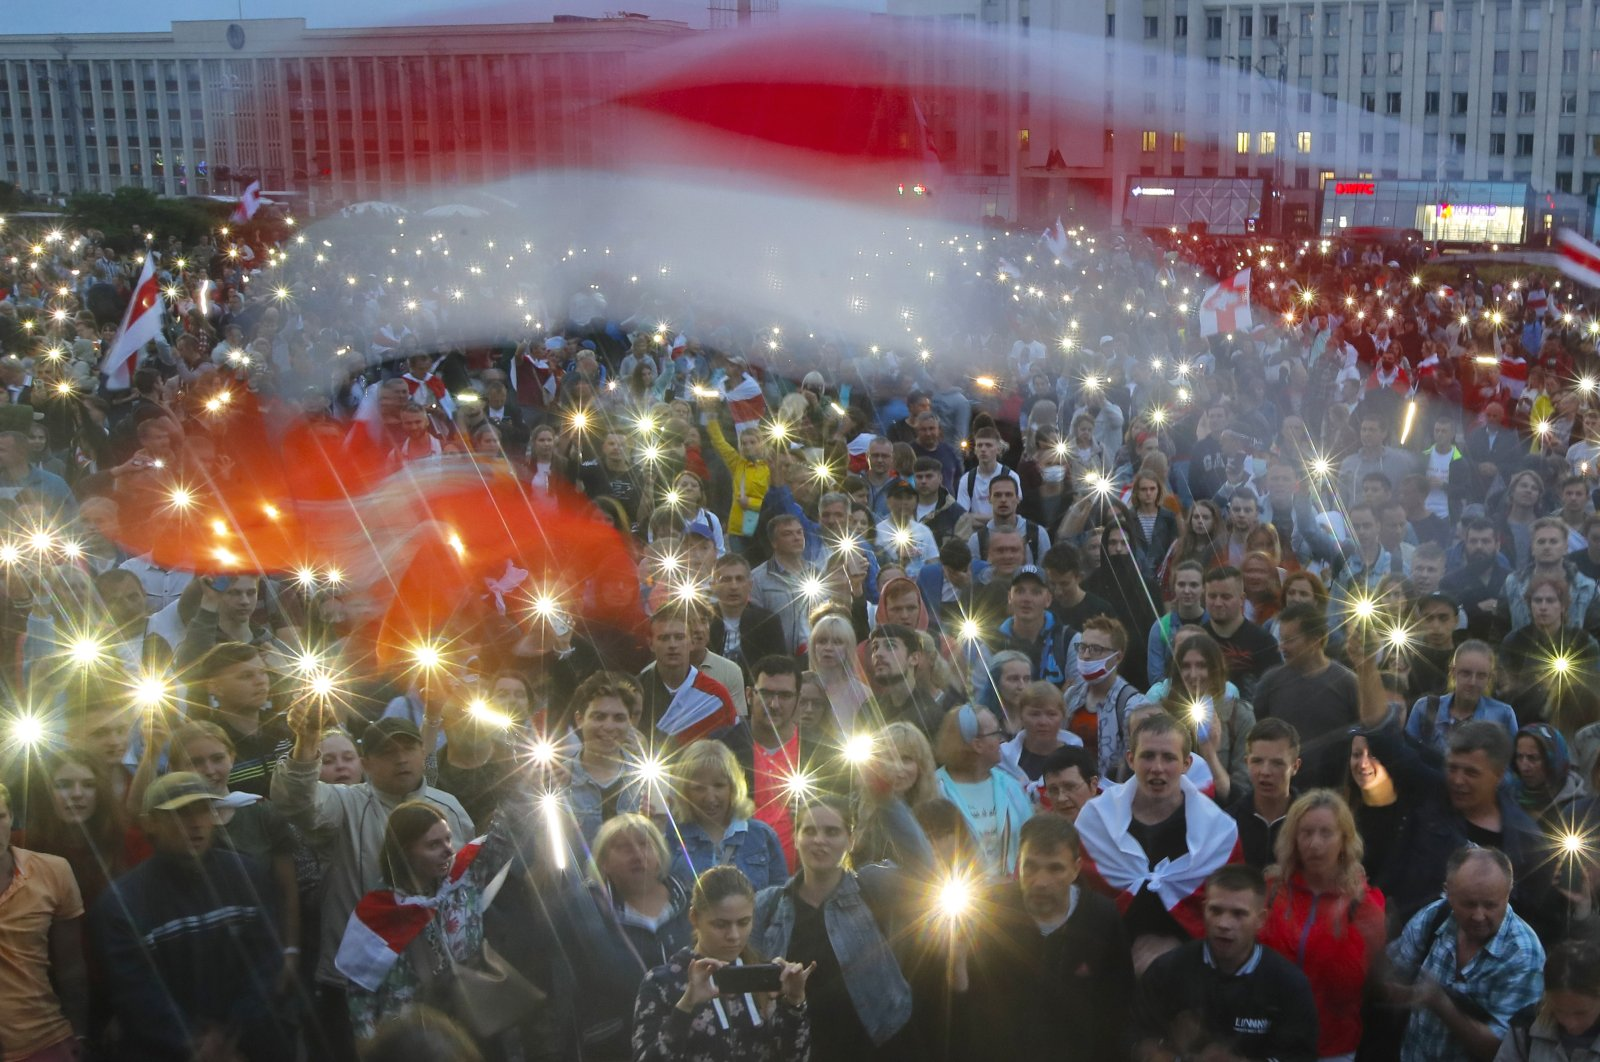 Belarusian opposition supporters light their phones and wave an old Belarusian national flag during a protest rally in front of the government building at Independent Square in Minsk, Belarus, Aug. 19, 2020. (AP Photo)